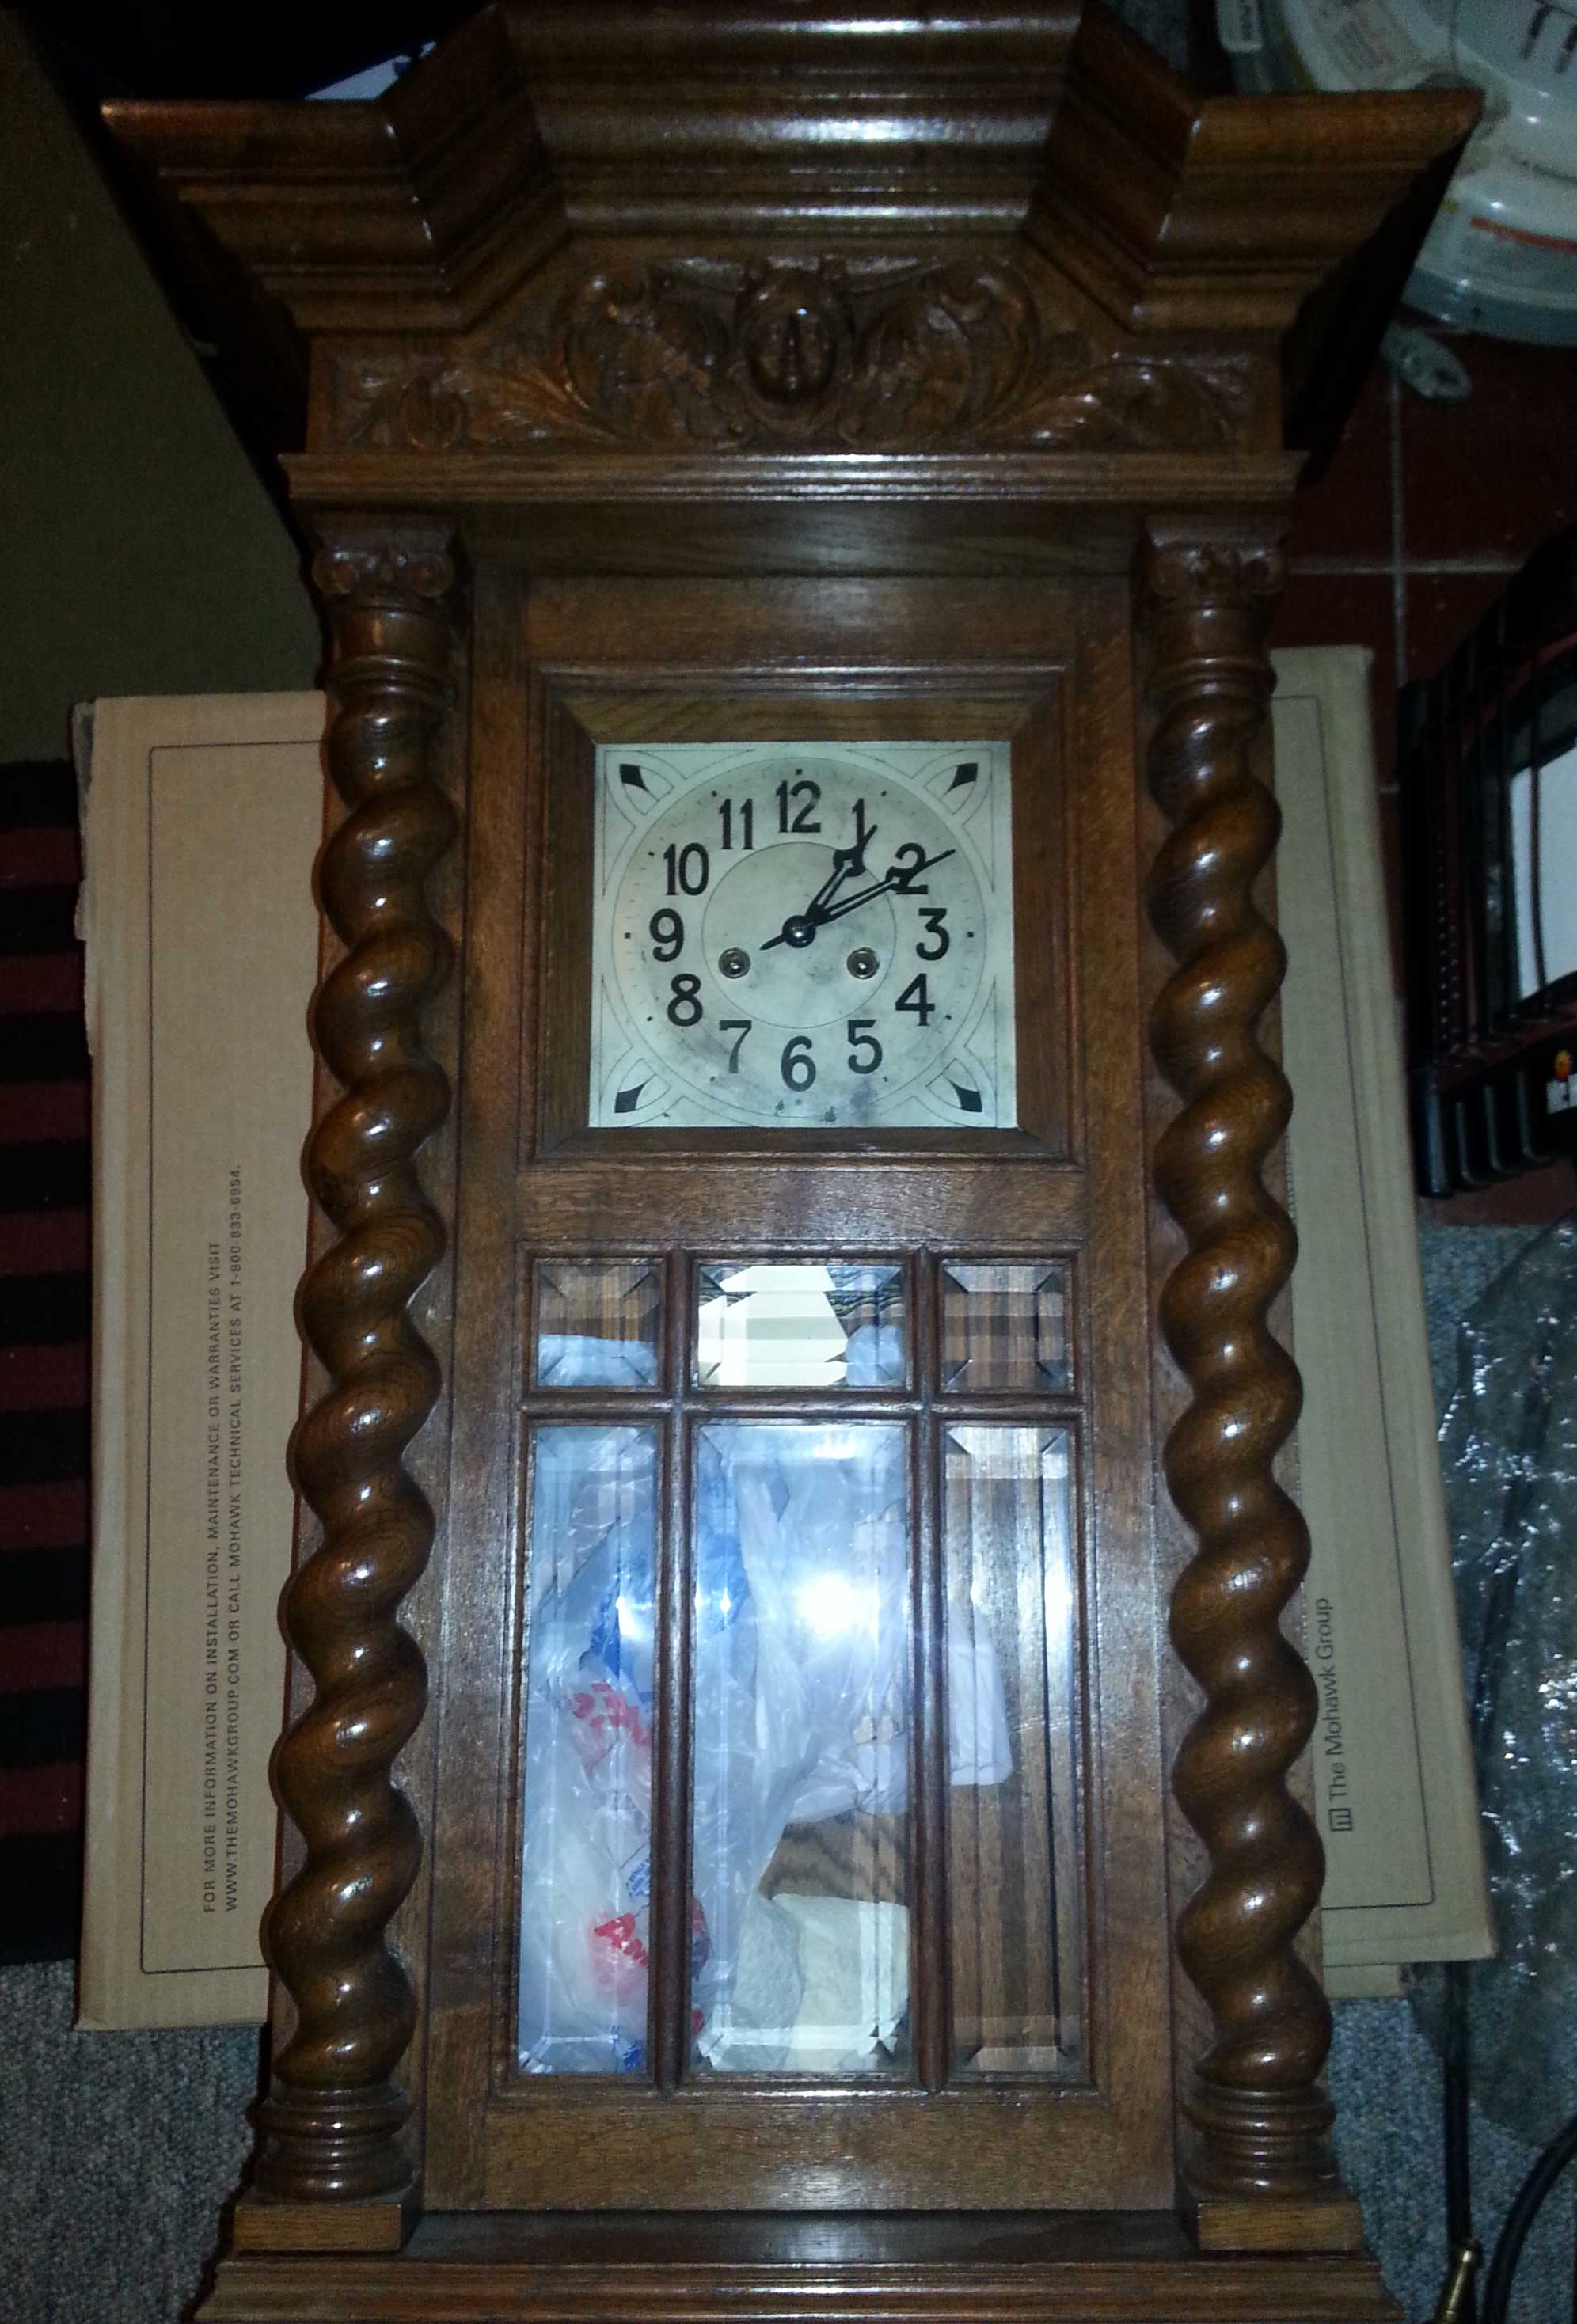 Antique mantel clock repair near me